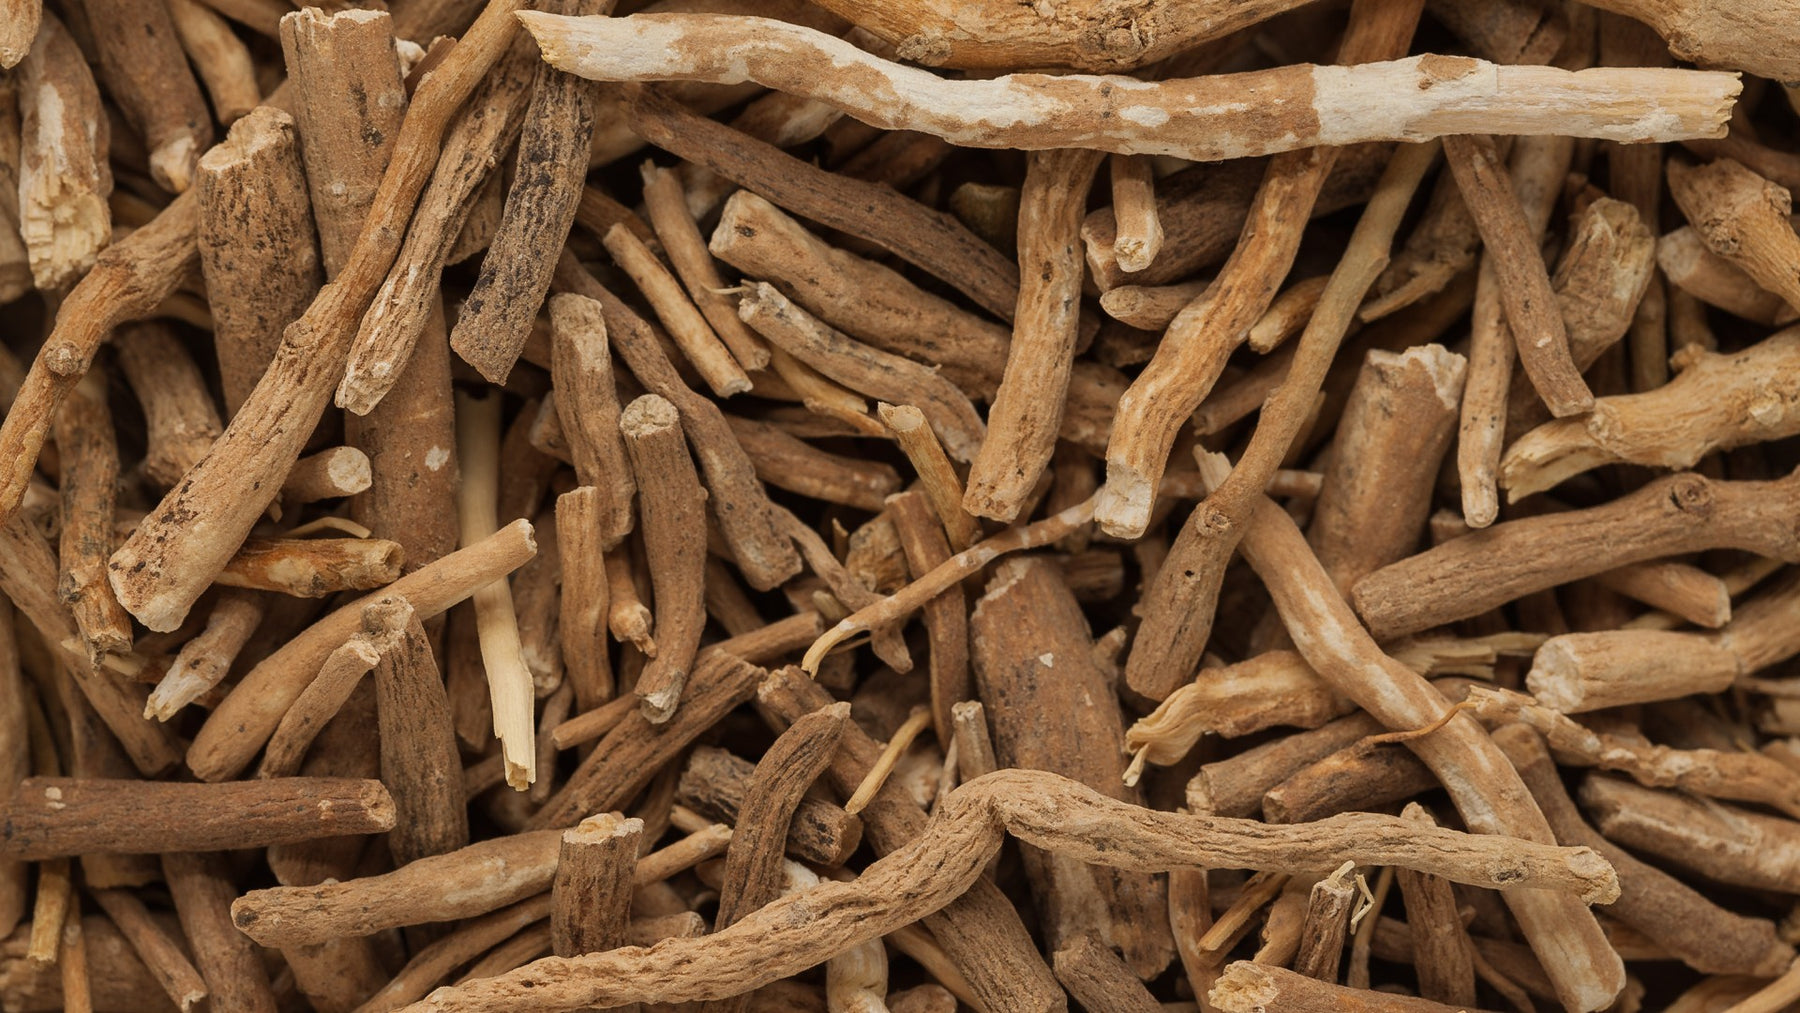 Ashwagandha: What It Is and Why I'm Taking It